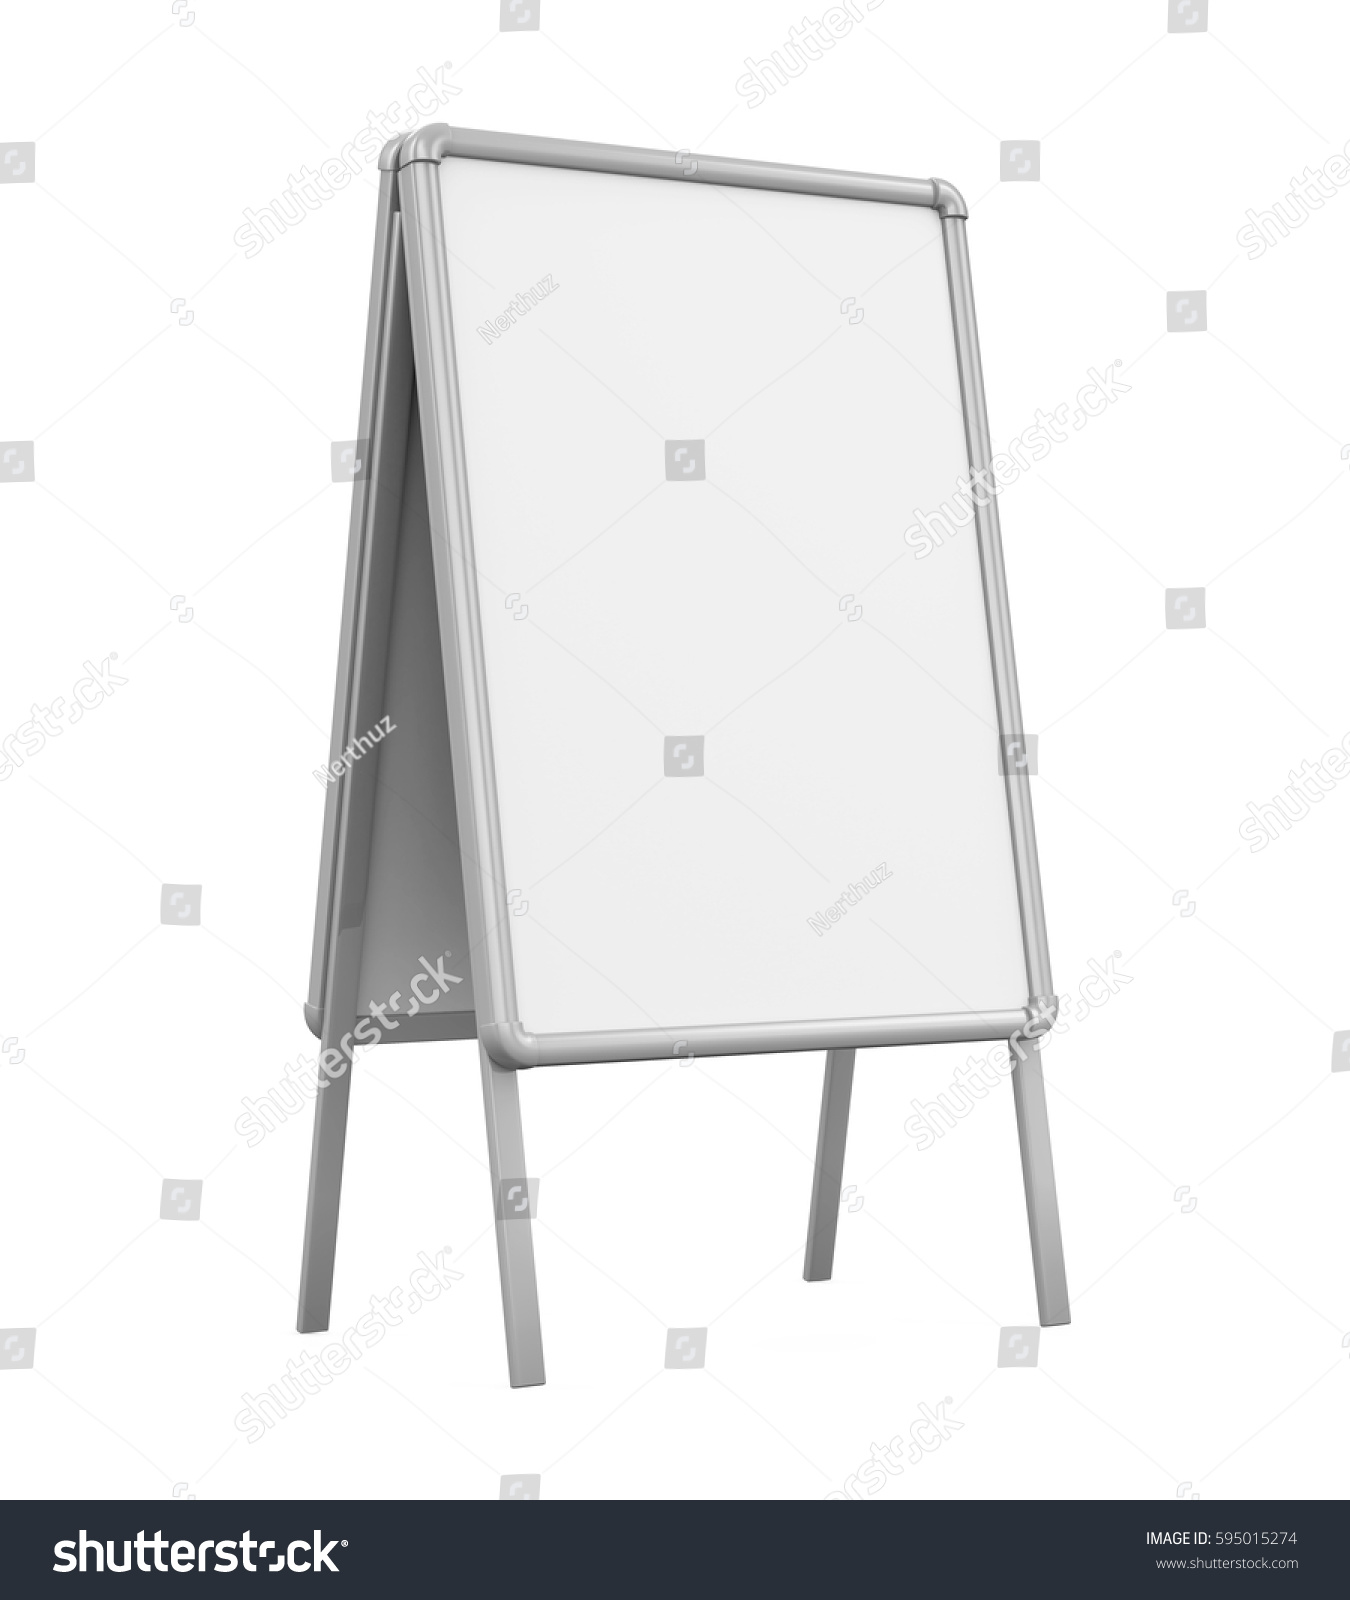 Whiteboard Ständer Sidewalk Blank Whiteboard 3 D Rendering Stock Illustration